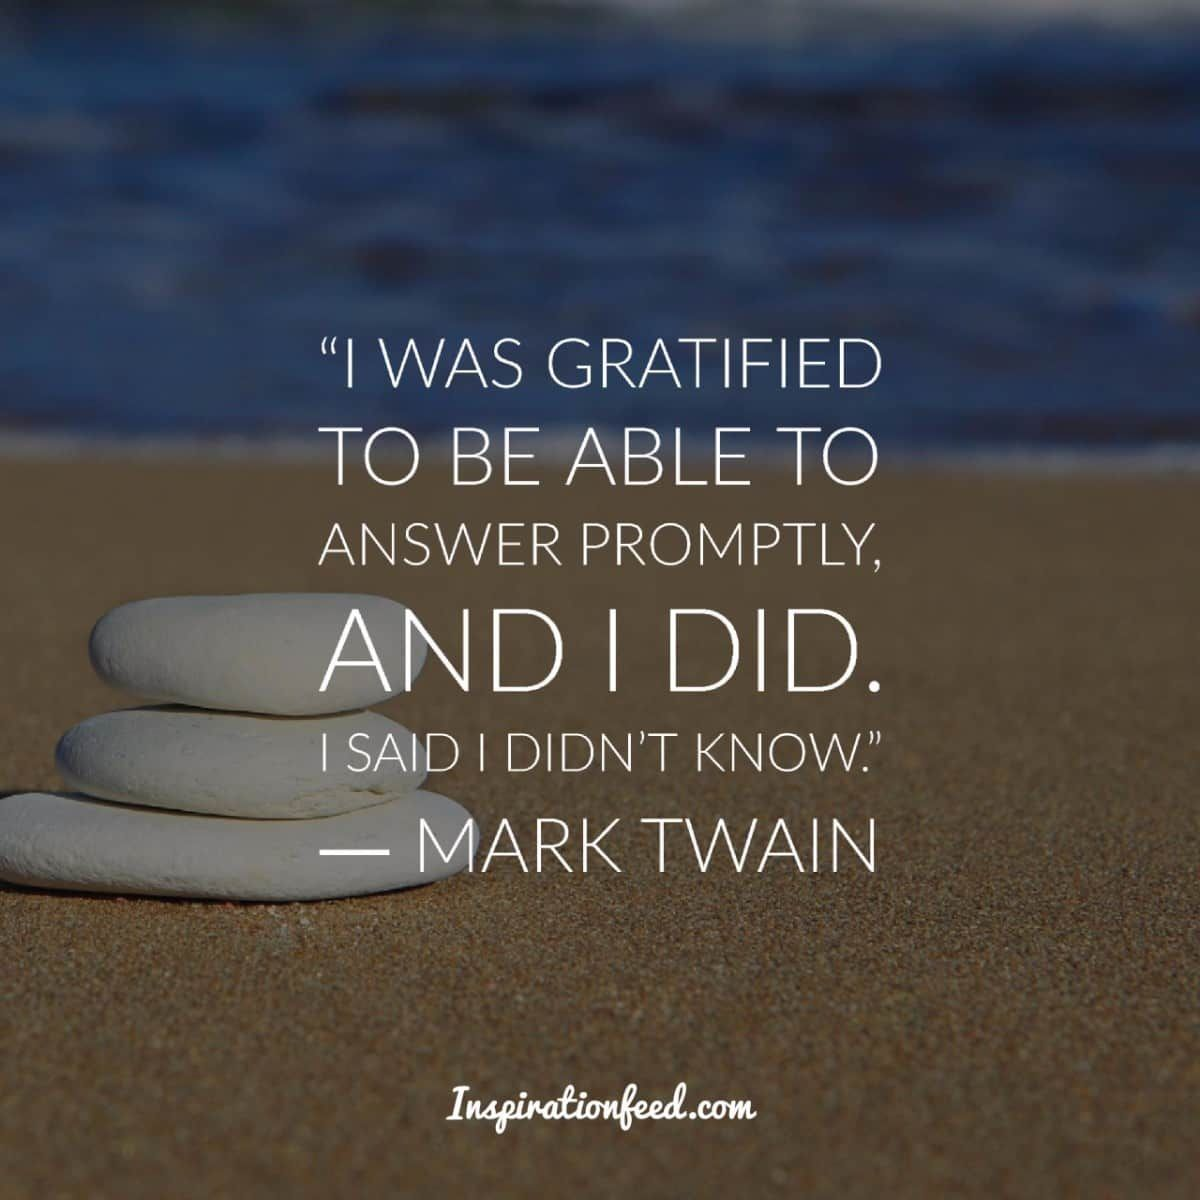 Wisdom About Life Quotes 30 Mark Twain Quotes About Life And Writing  Mark Twain Life